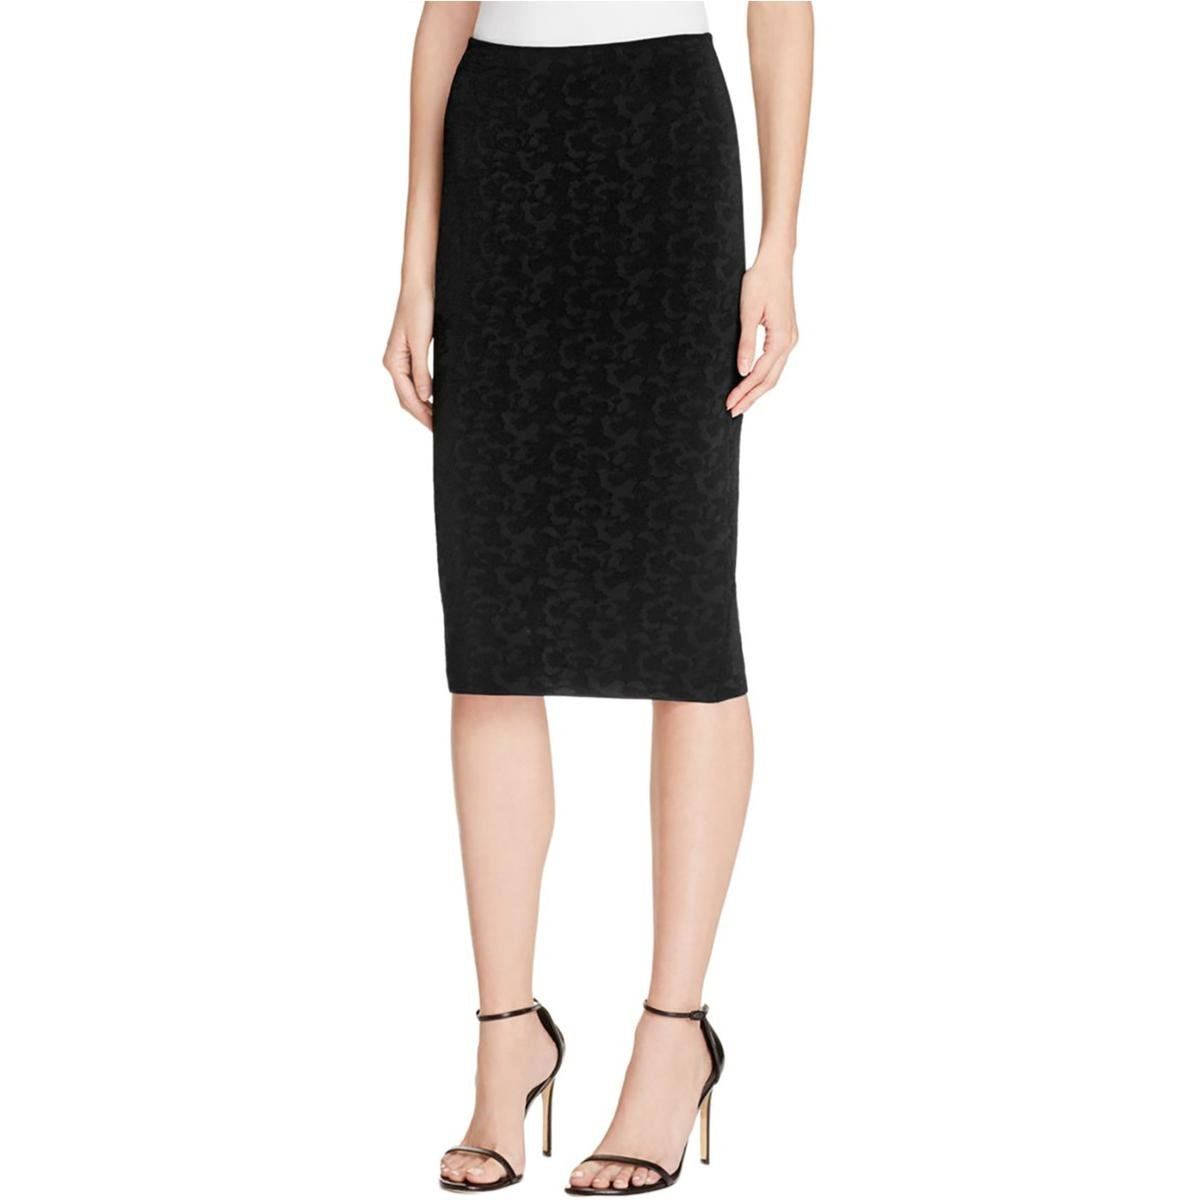 Elizabeth and James Womens Pencil Textured Pencil Skirt Black S